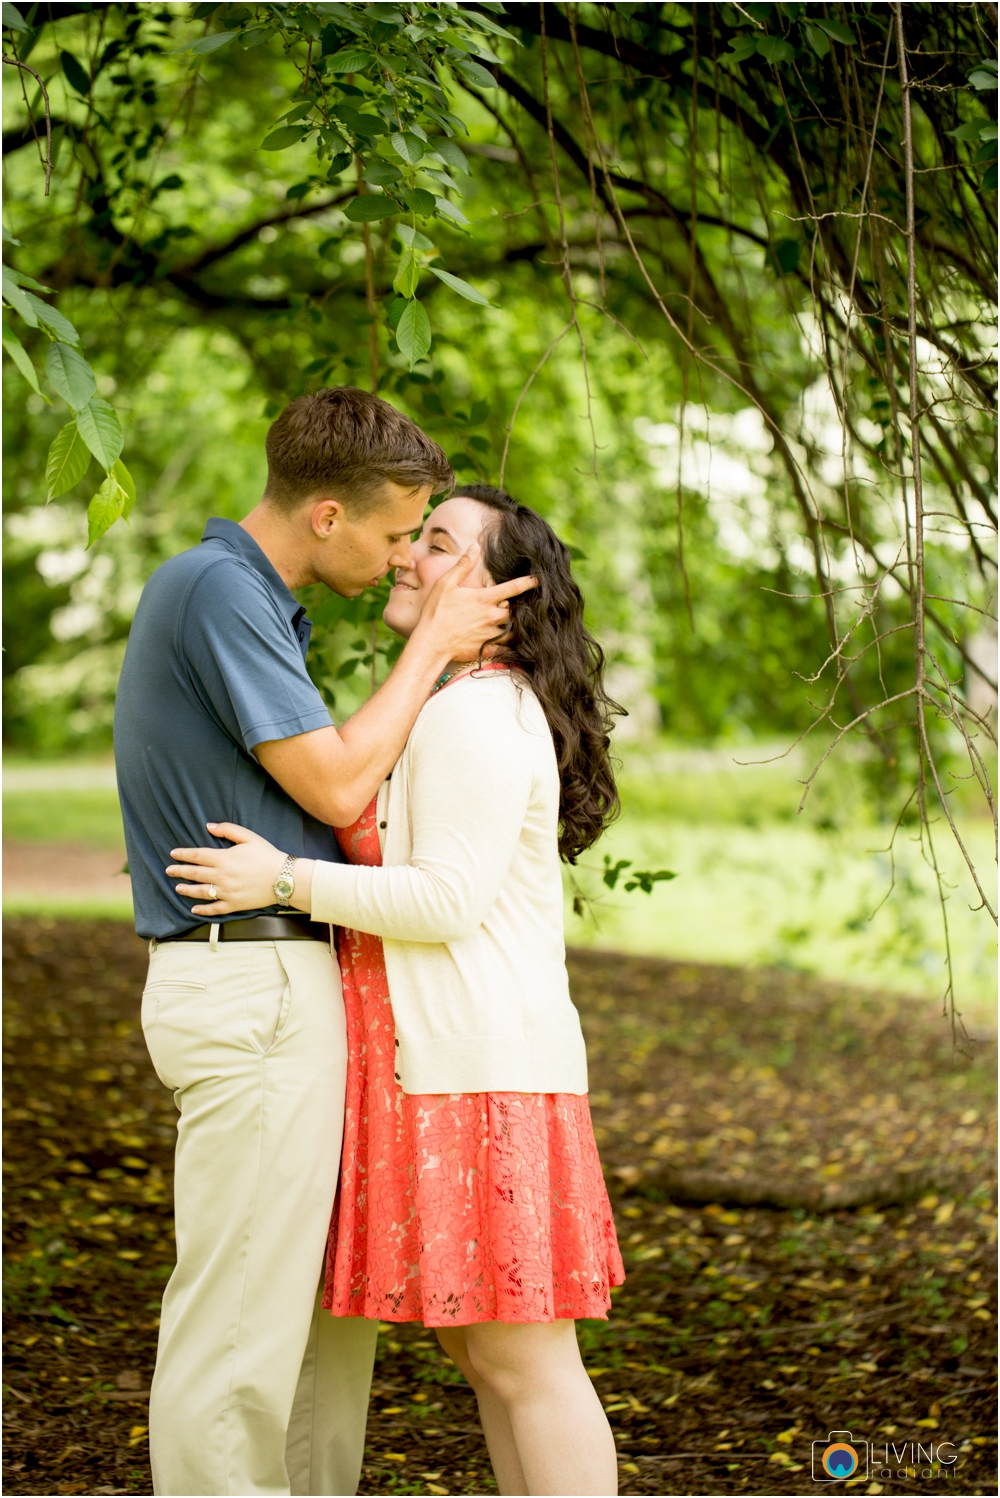 melissa-chris-brookside-gardens-engagement-session-outdoor-gardens-living-radiant-photography-maggie-patrick-nolan_0020.jpg